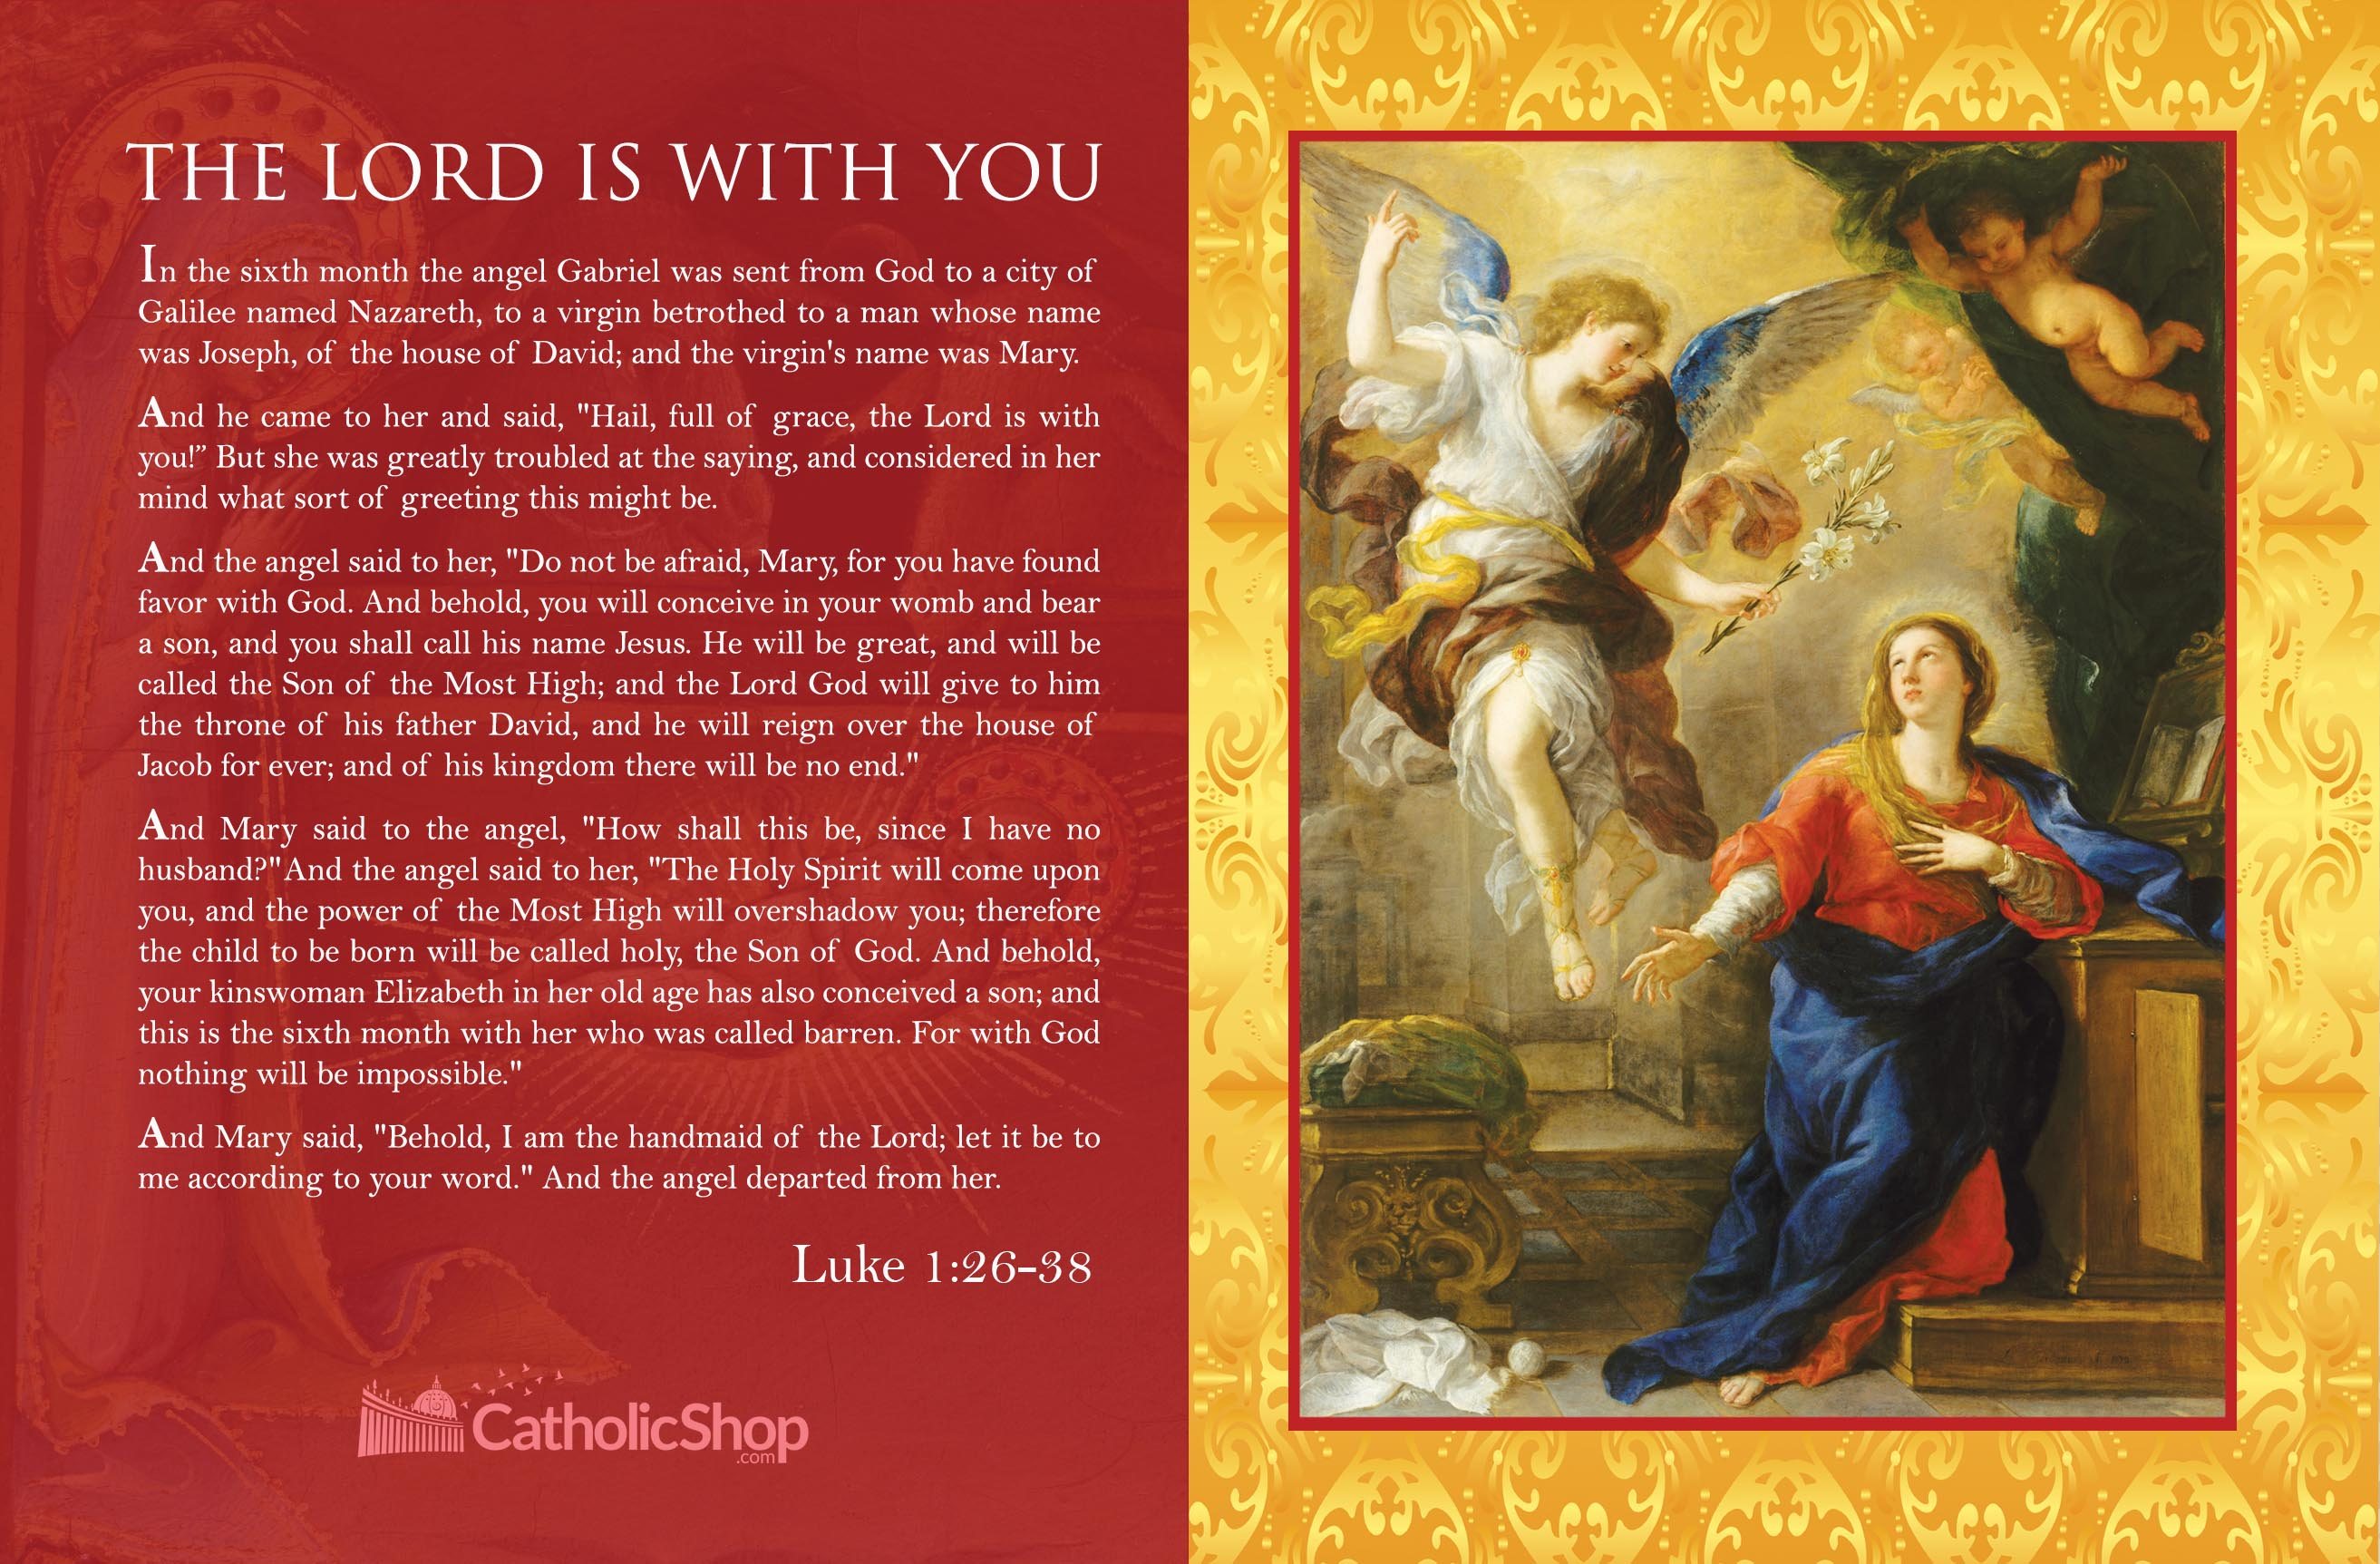 Catholic Shop online religious gifts and jewelry store